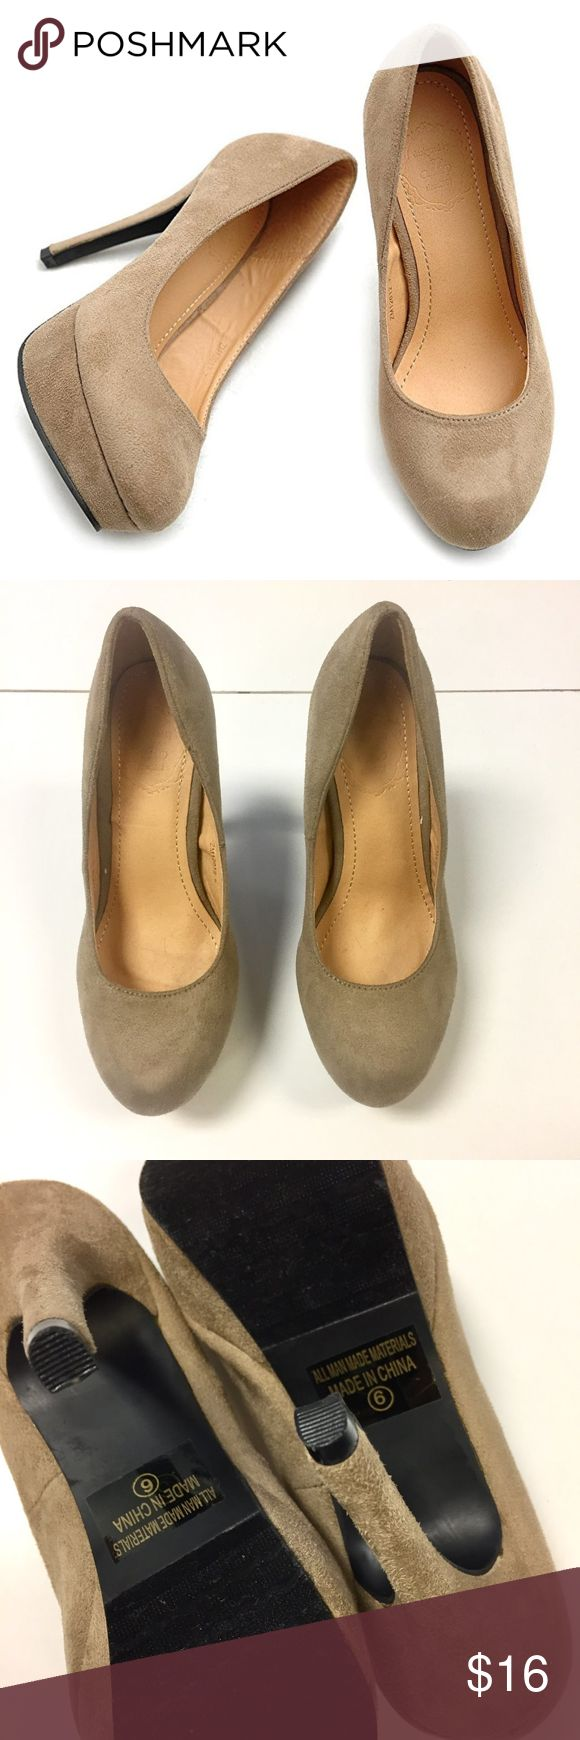 """JUST REDUCED❗️NEW Ollio High Heel Pumps Faux Suede PRICE FIRM unless bundled. These Ollio Women's platform high heel shoes are brand new. Never worn. Still has sticker on bottoms. They are currently for sale on Amazon for $32.99. Very versatile! You can wear these with anything. Color: Tan. Faux Suede. Size 6. Heel measures approx. 5"""" and platform measures approx. 1"""". Fits true to size. Cover photo is a stock photo. Original photos are after :) Does not include original shoe box. Nordstrom…"""